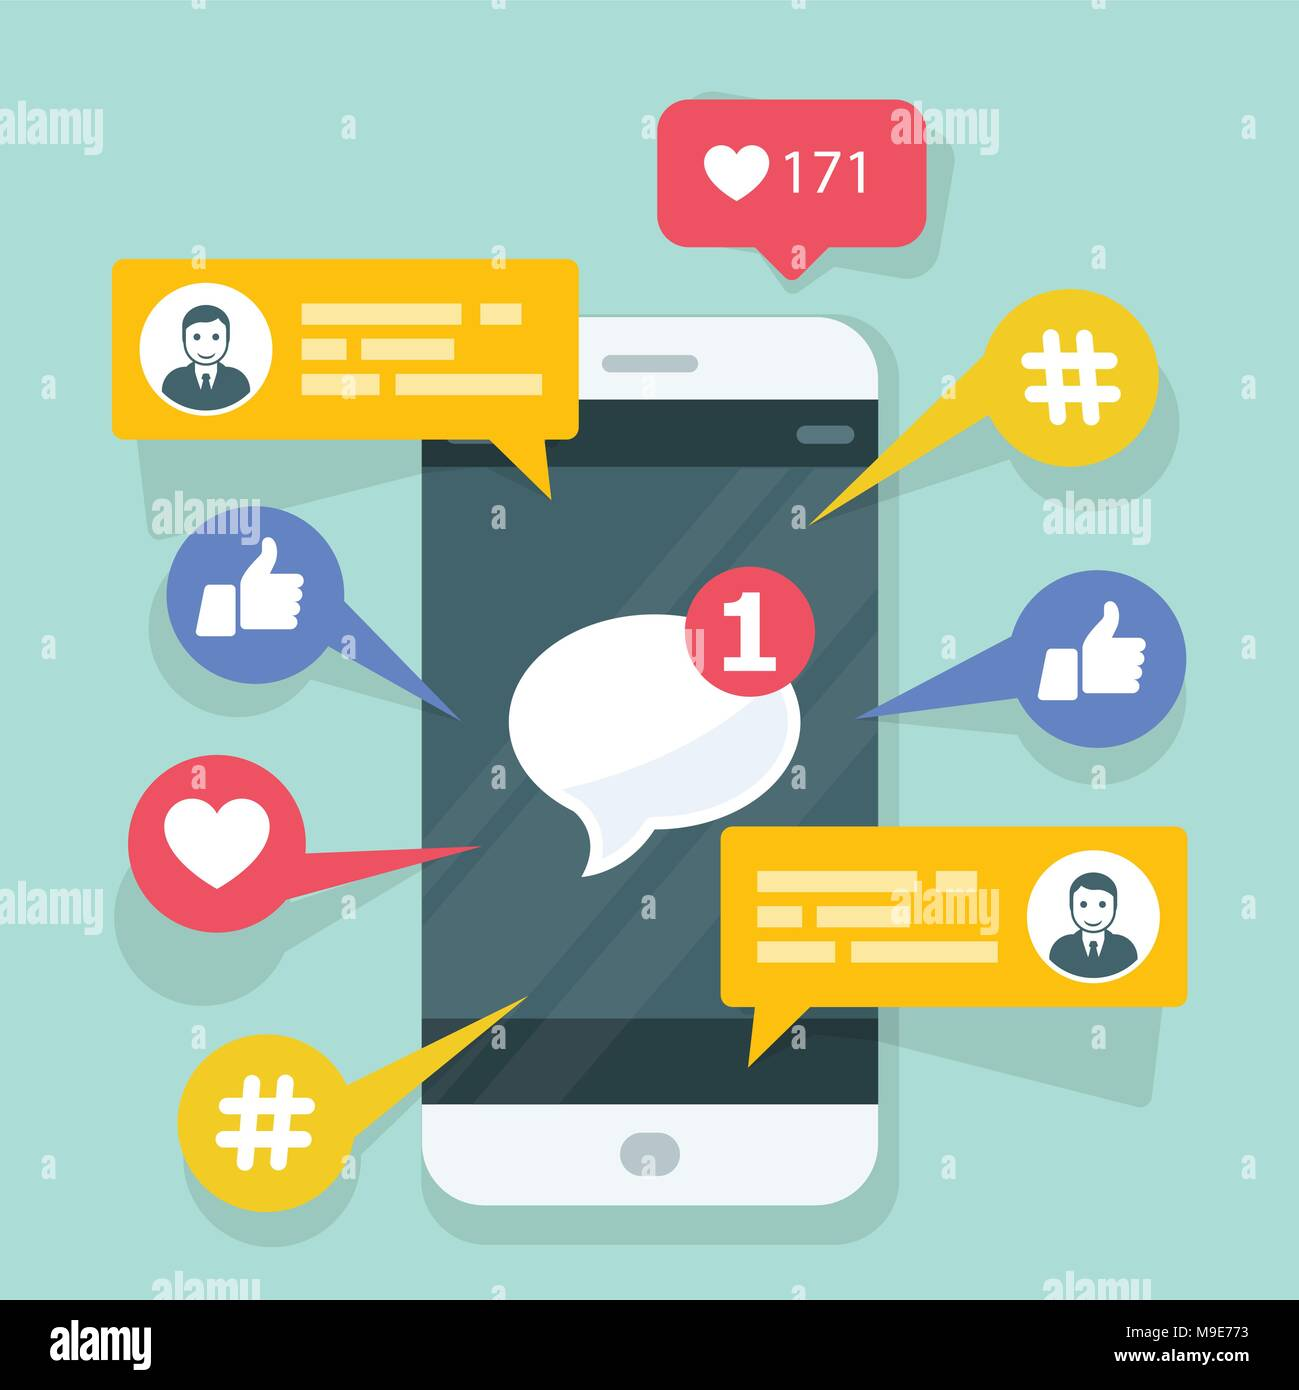 Viral content, smm and social activity - likes, shares and comments popping up on the mobile screen - Stock Image